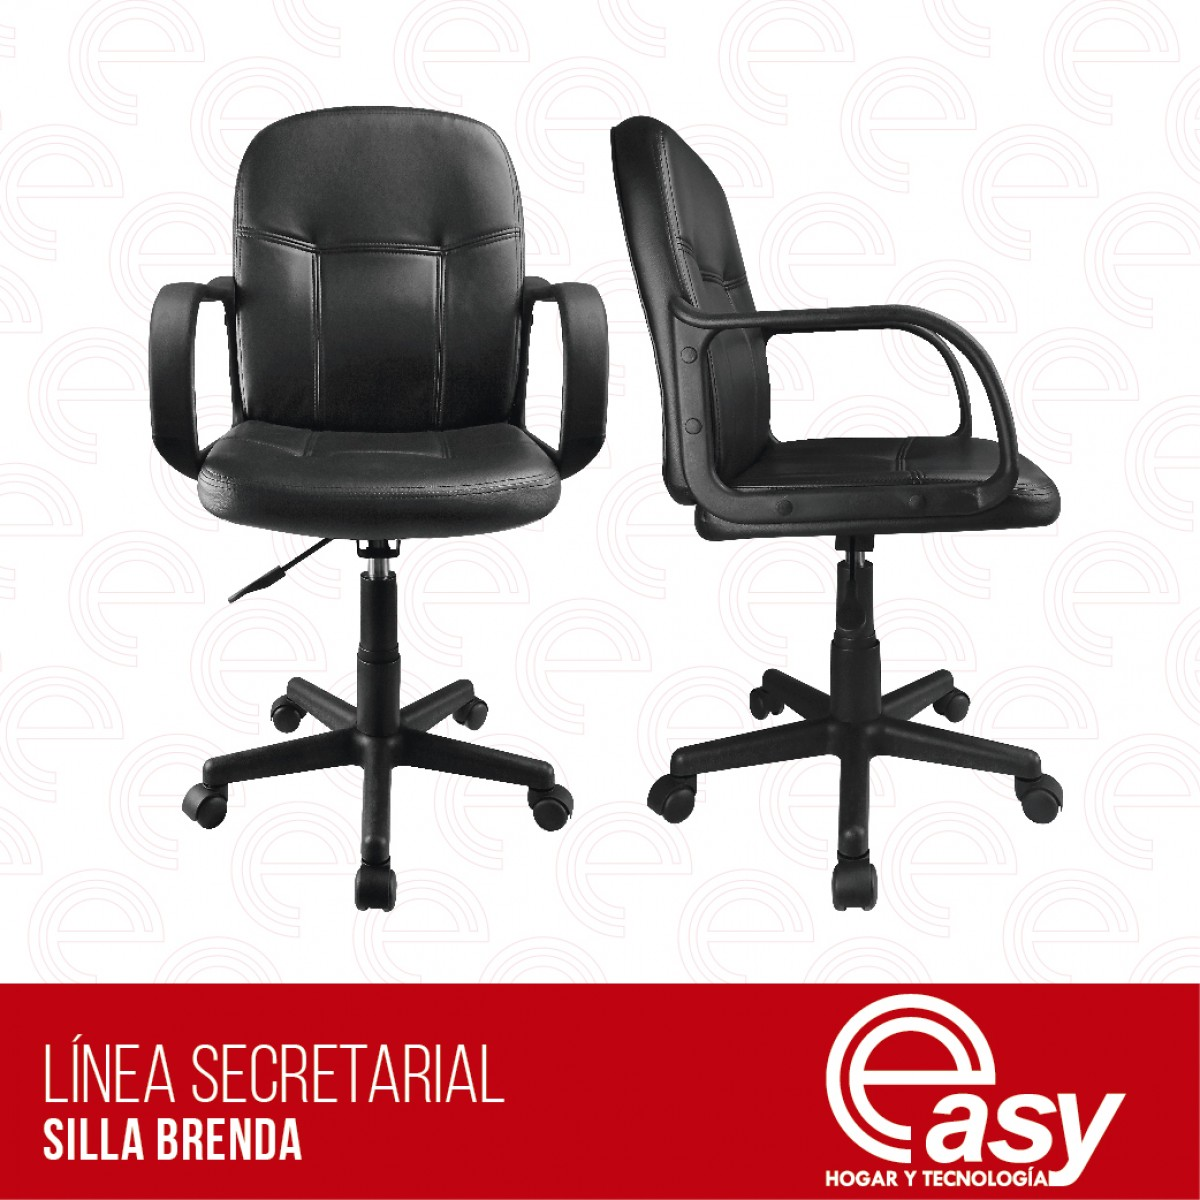 Easy silla secretarial brenda easy for Silla secretarial